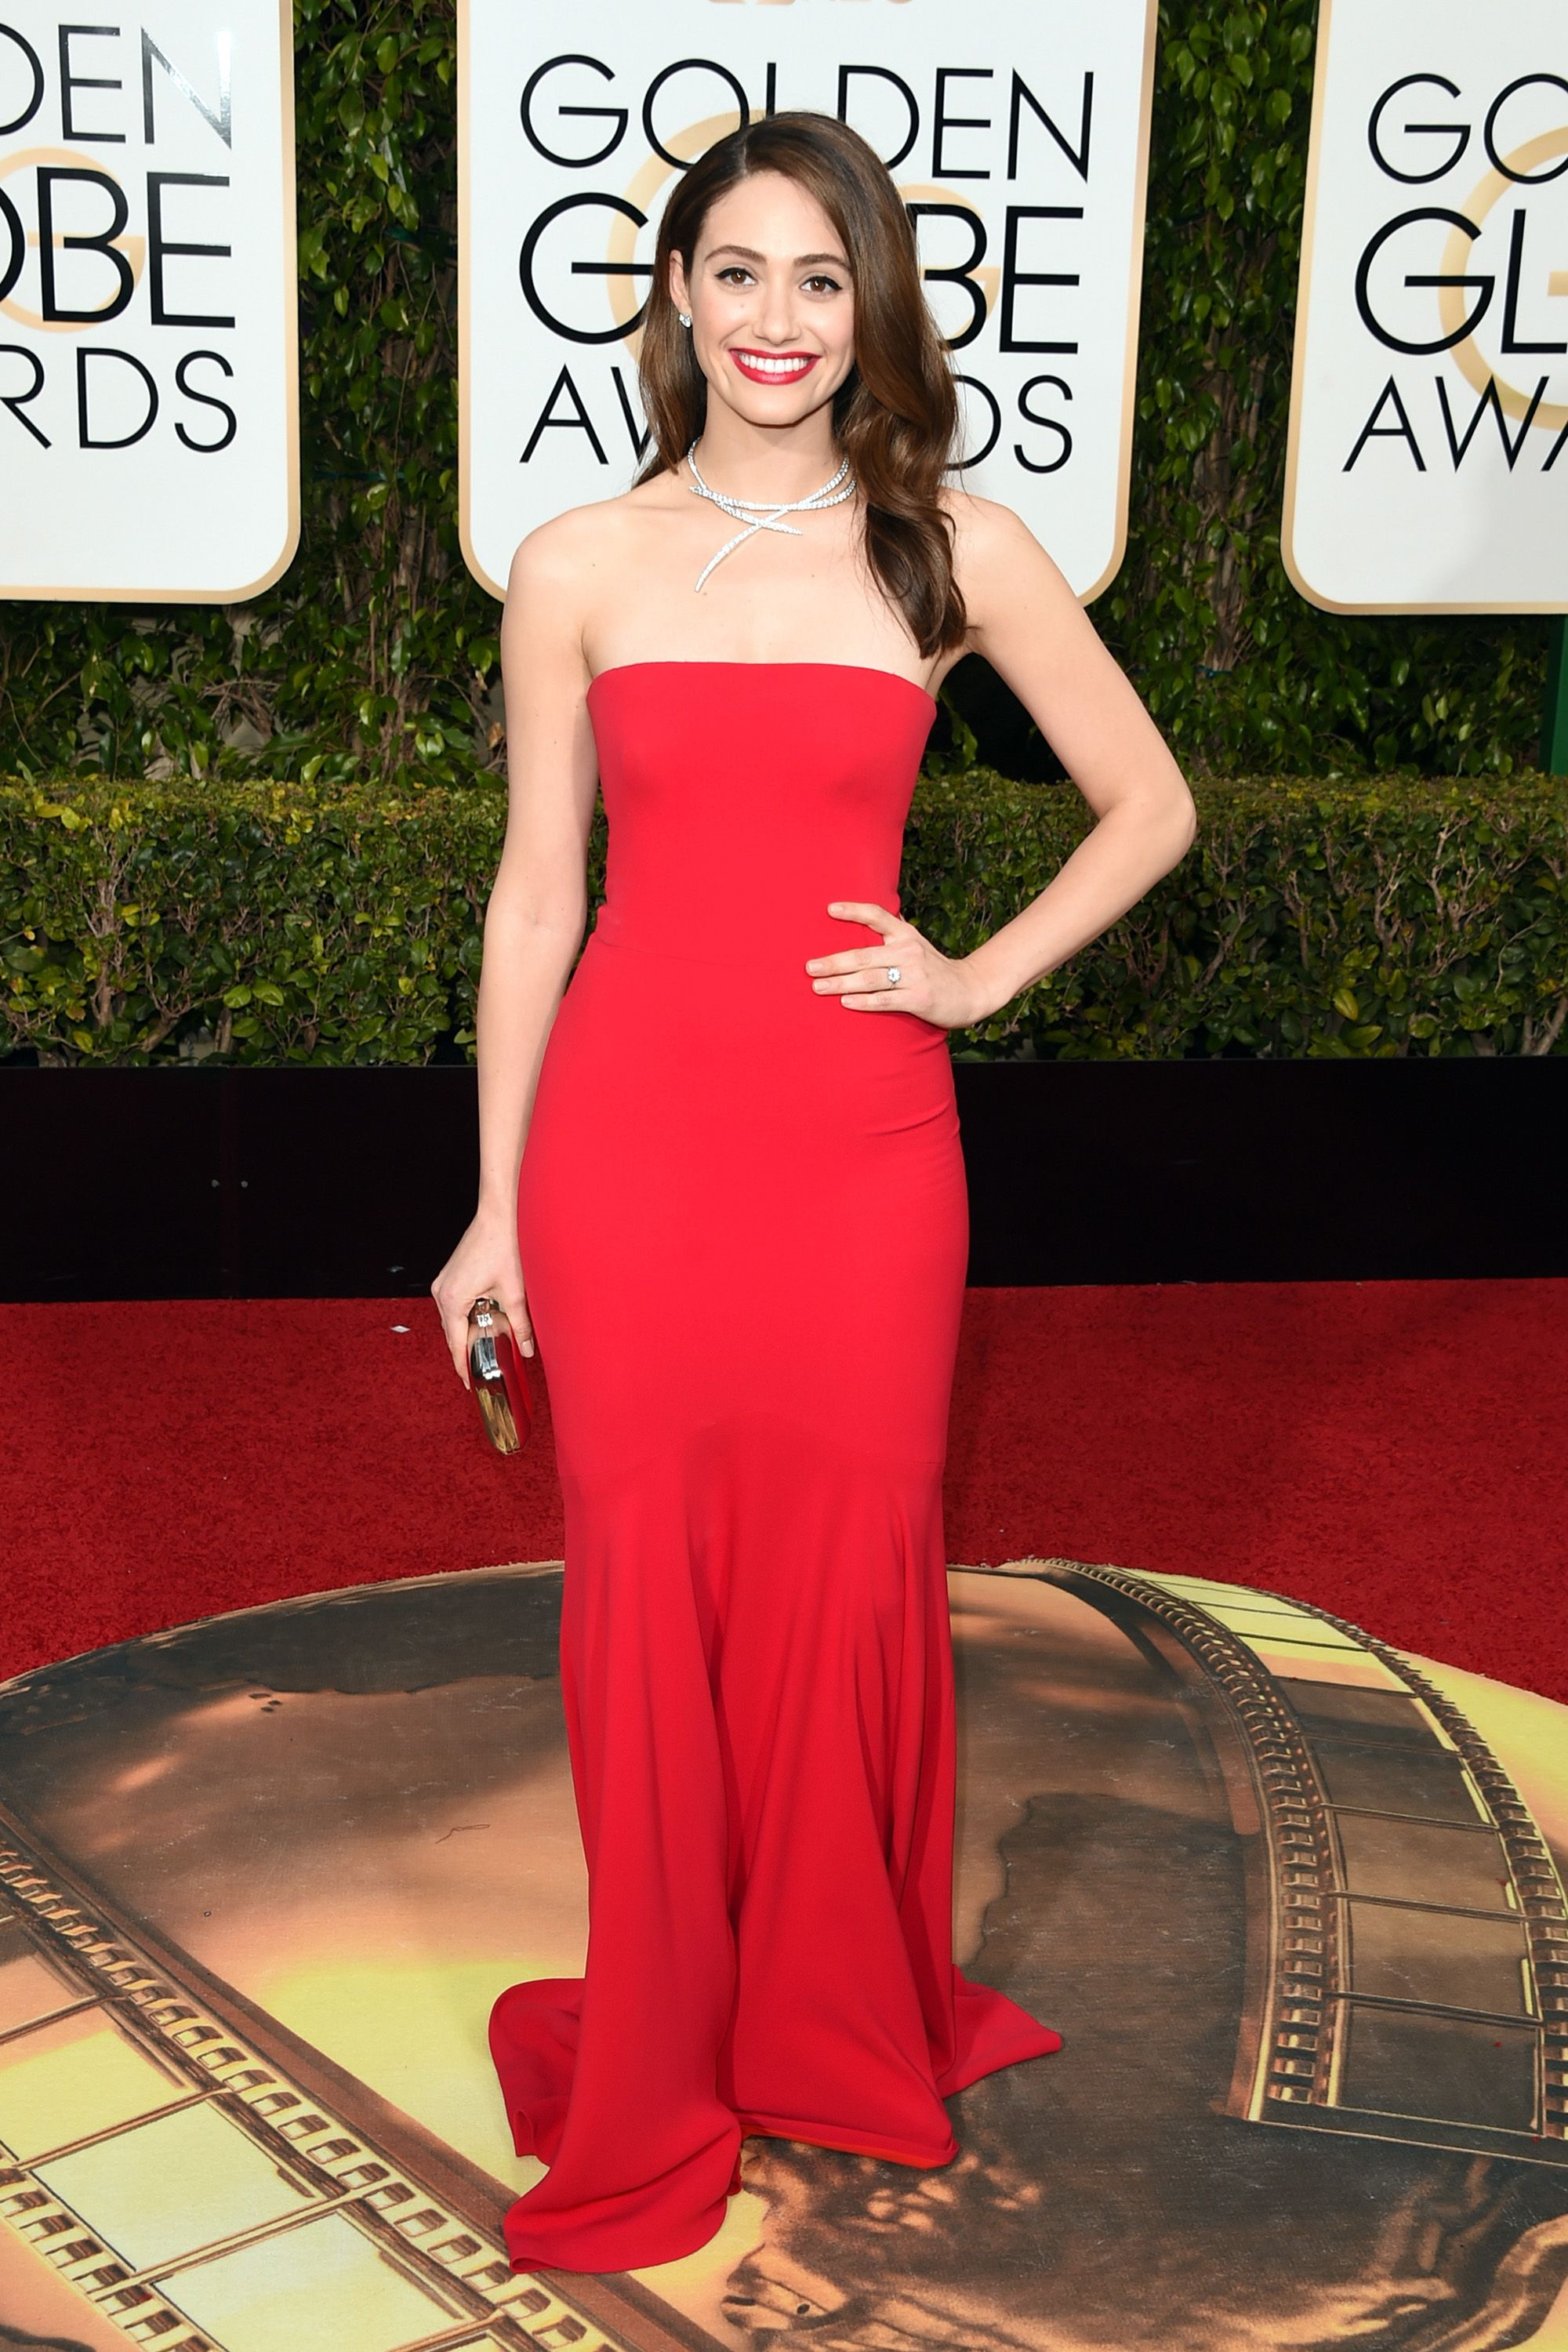 Golden Globes Red Carpet 2016 - Pictures from 2016 Golden Globes Red ...